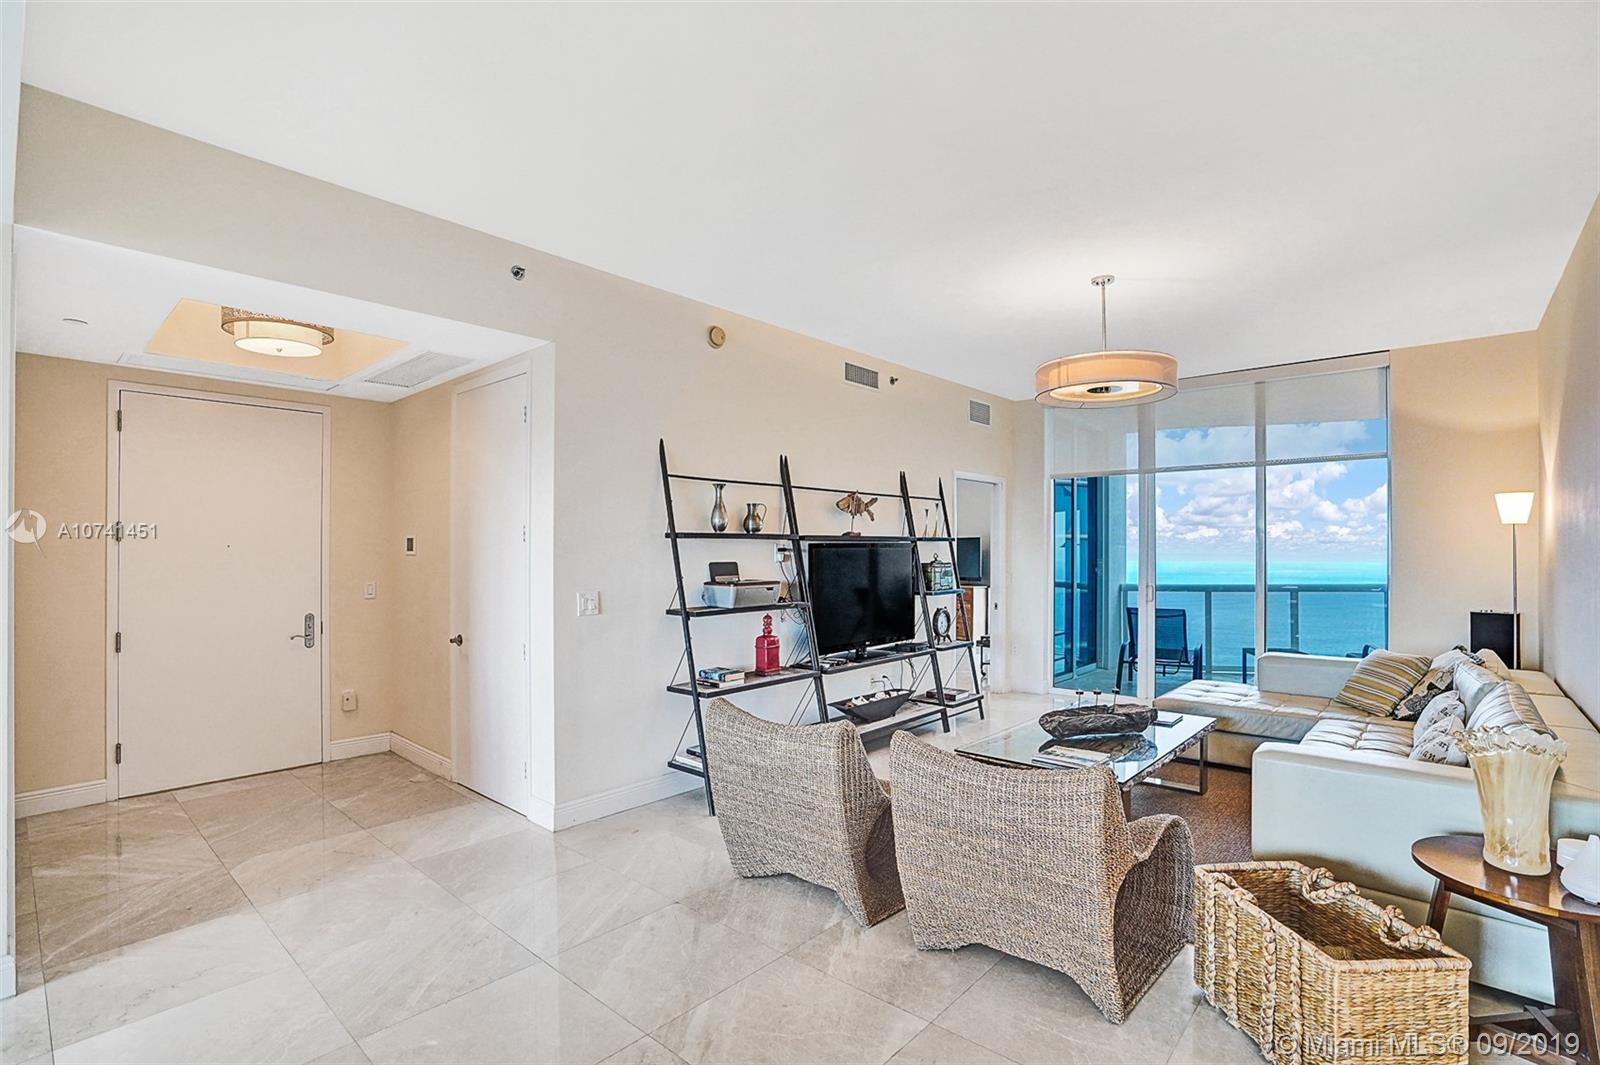 Spacious 3 bed/3.5 bath at Trump Towers III with views of ocean and cityscape. Flow-through unit with sunrise and sunset balconies. Private foyer. Marble flooring throughout with motorized window treatments. Italian cabinetry with island and granite countertops in kitchen. Marble bathrooms. Sub Zero and Miele appliances.